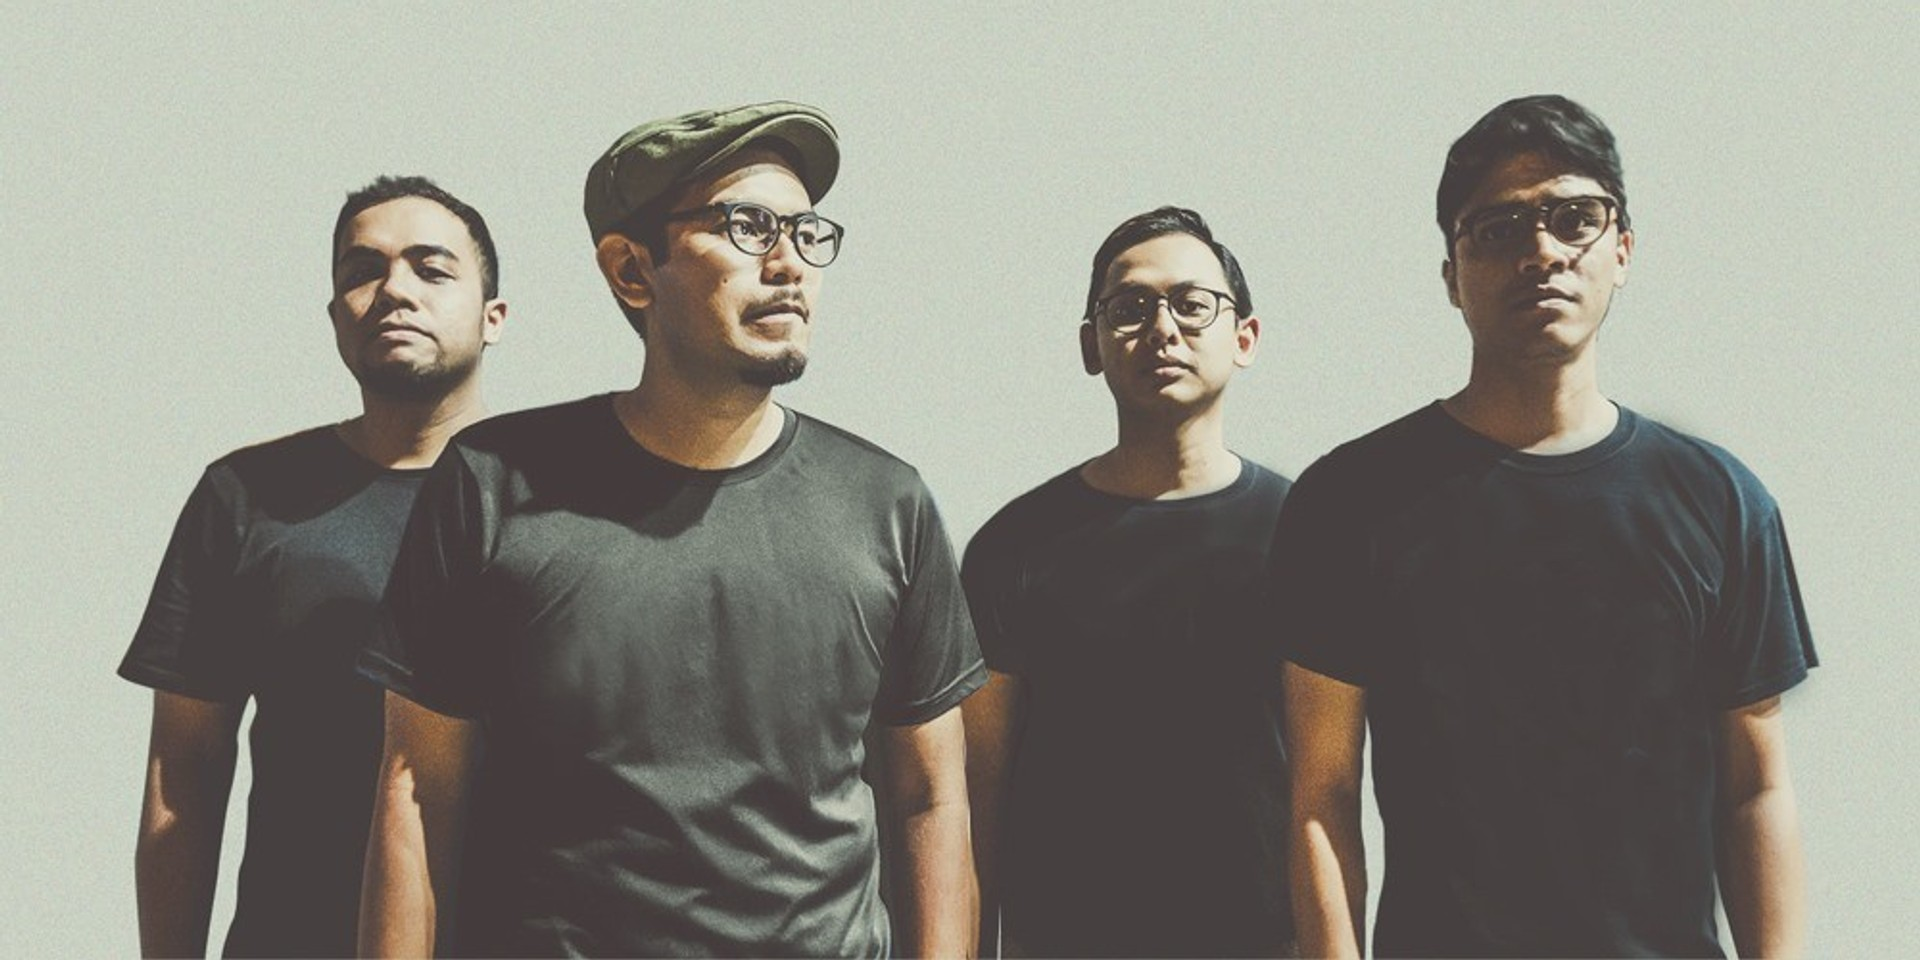 Esplanade kicks off 2017 with a line-up of acts releasing new material